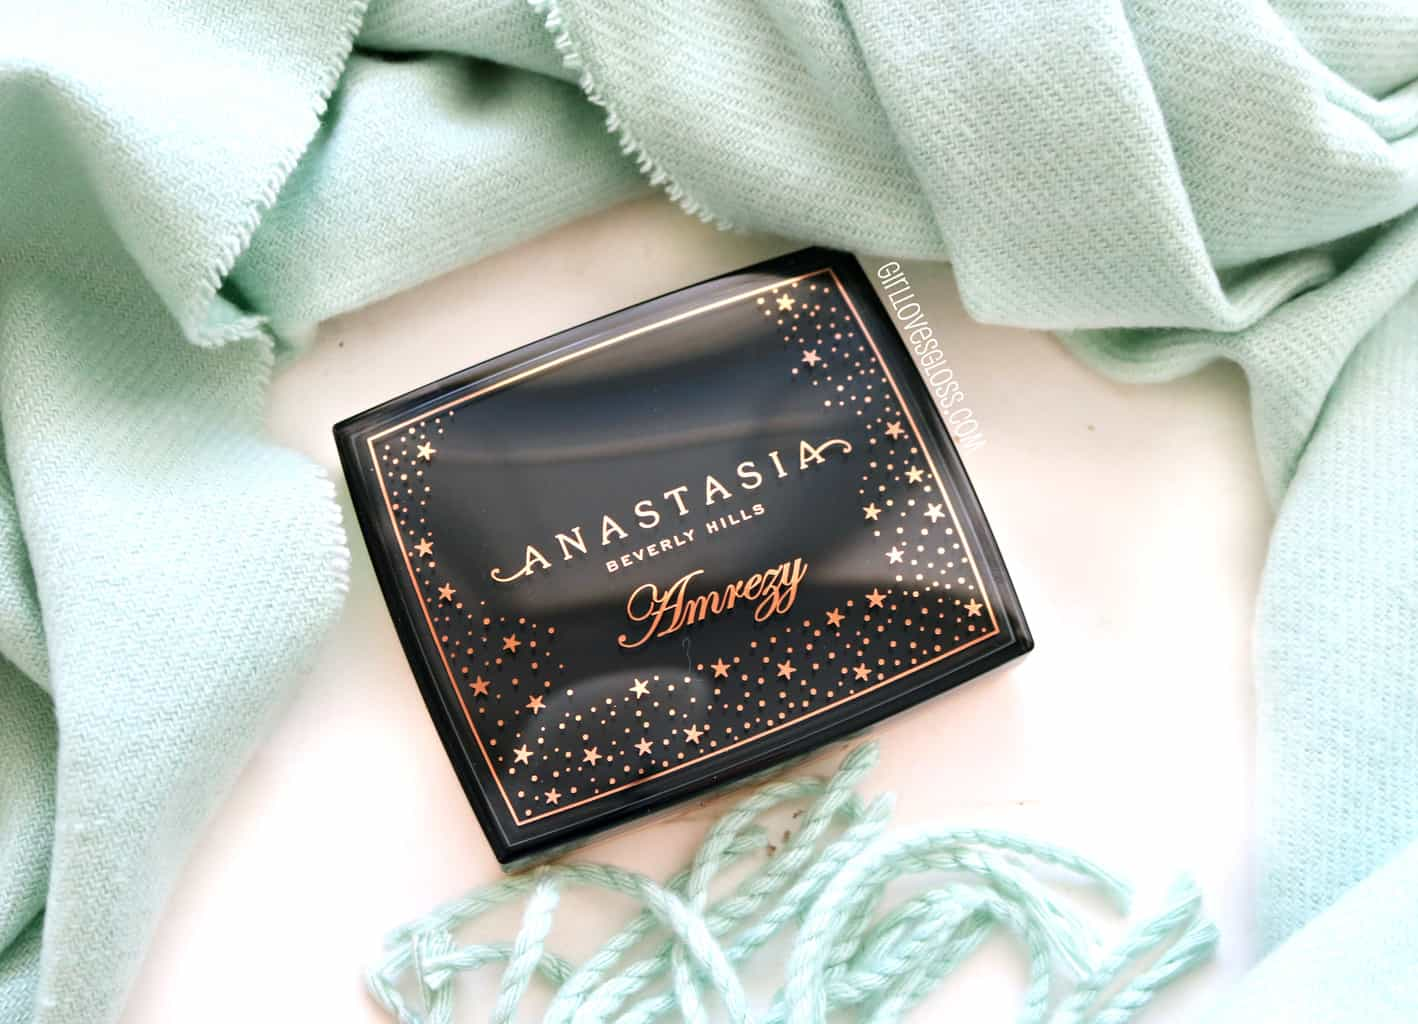 Anastasia Beverly Hills Amrezy Highlighter Review and Swatch